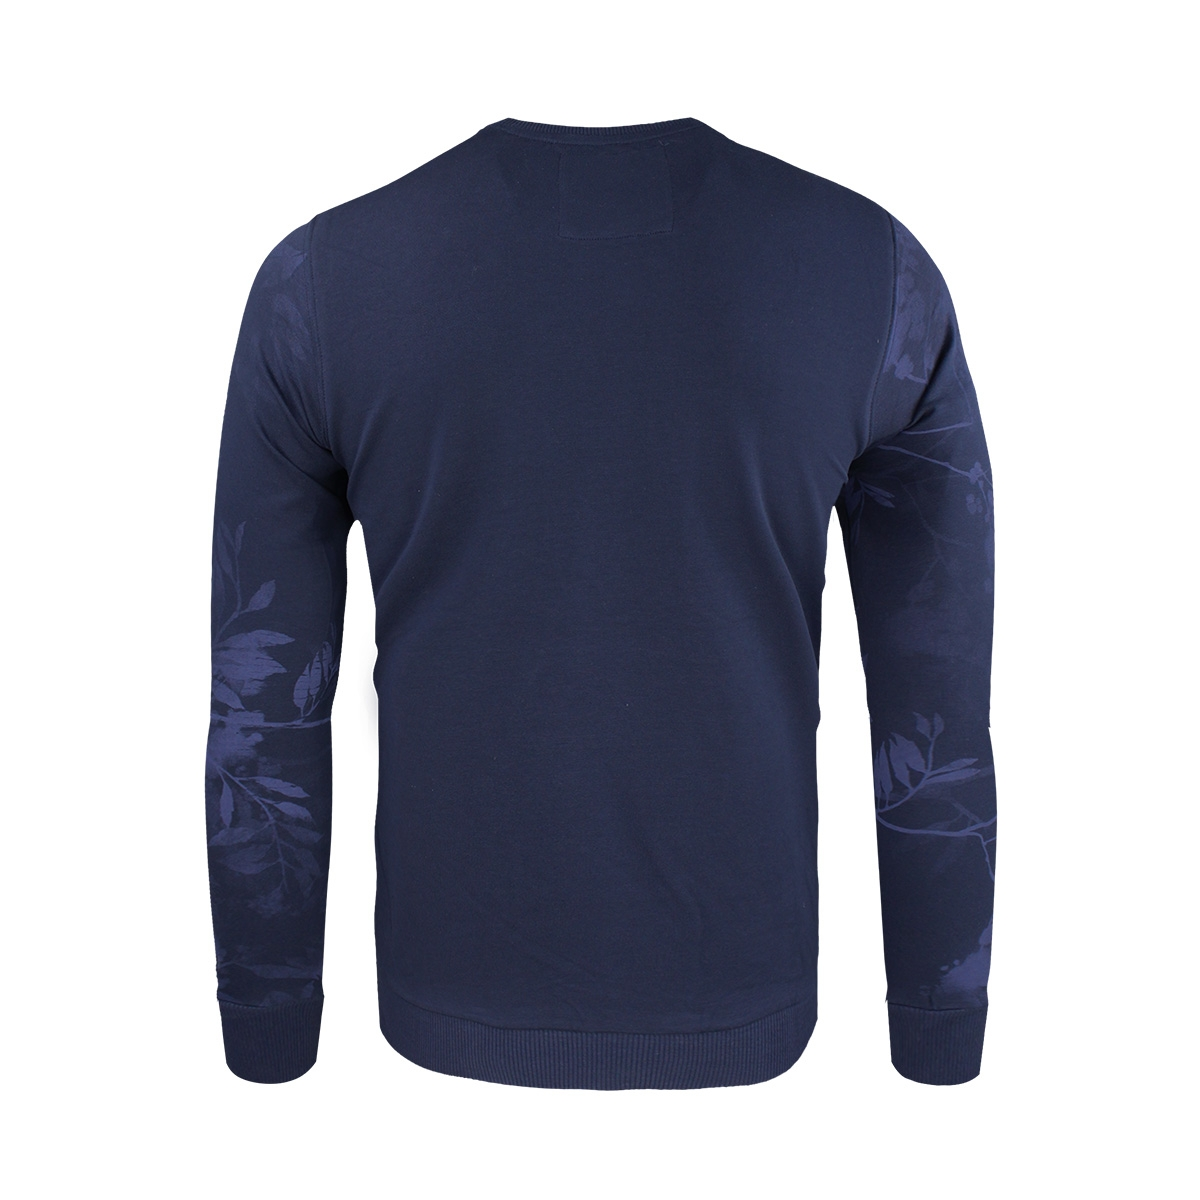 77071 gabbiano sweater navy